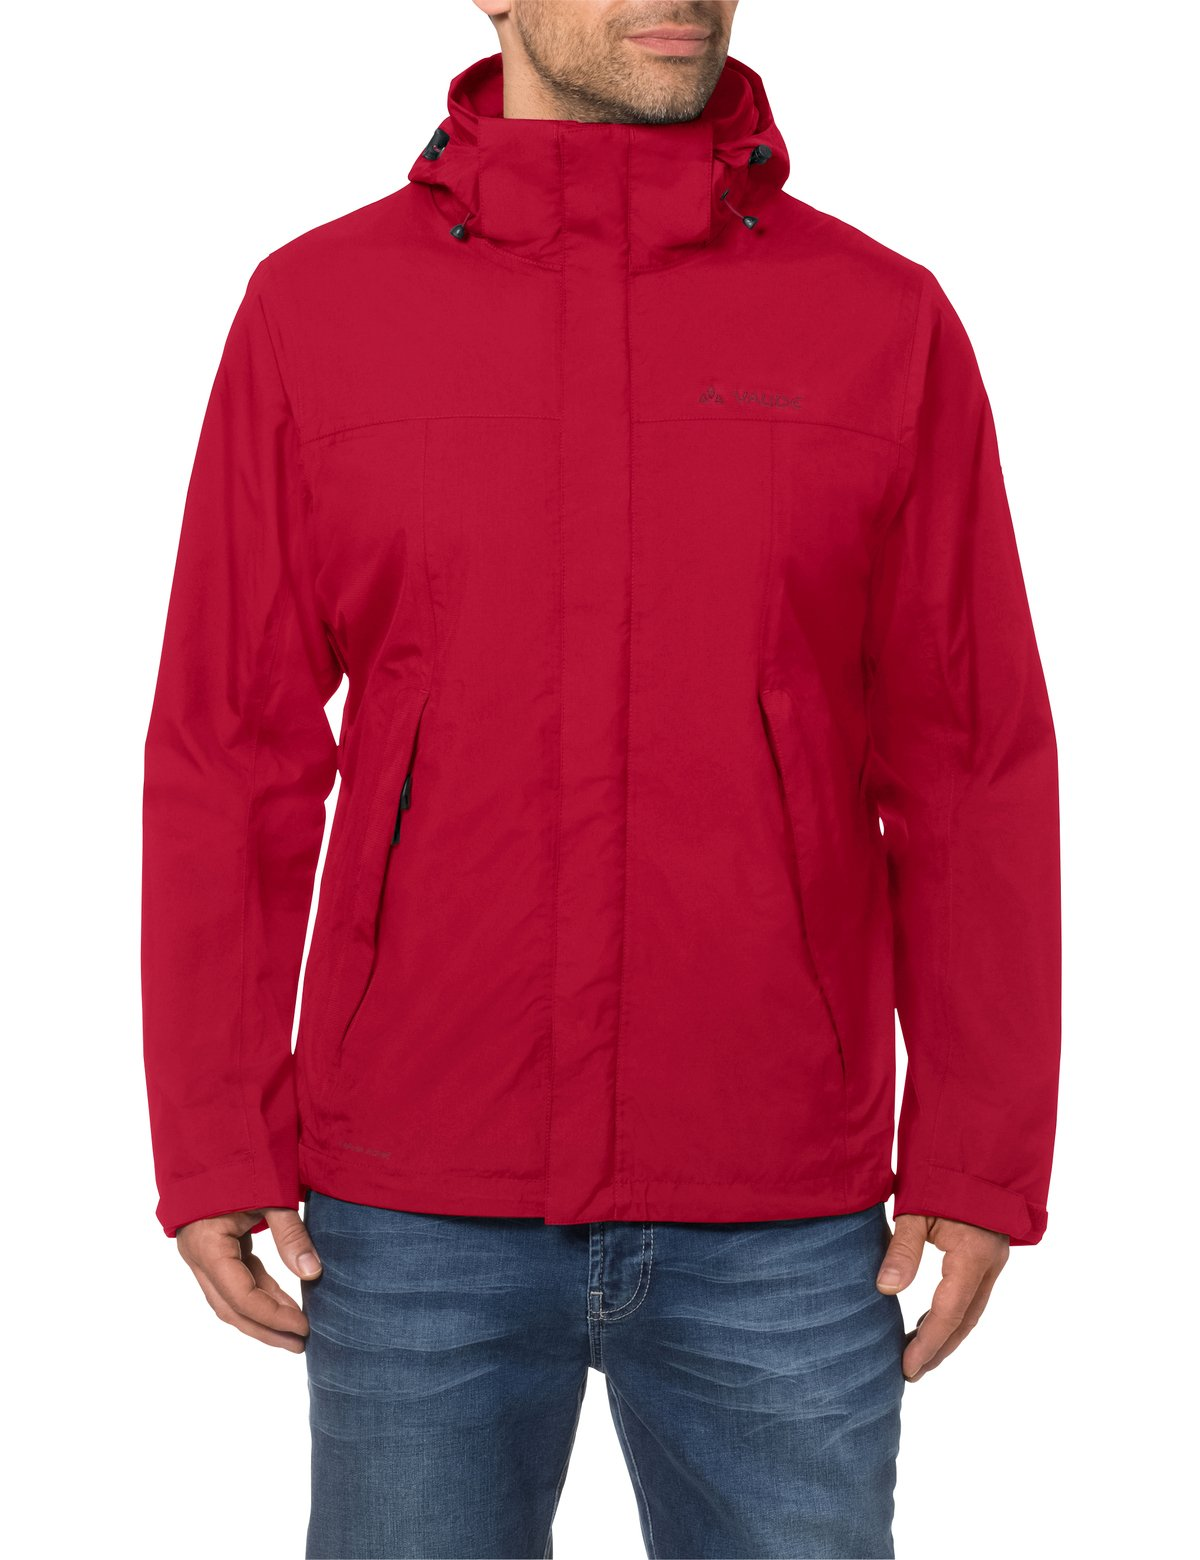 VAUDE Herren Jacke Escape Light Jacket, indian red, M, 043416145300